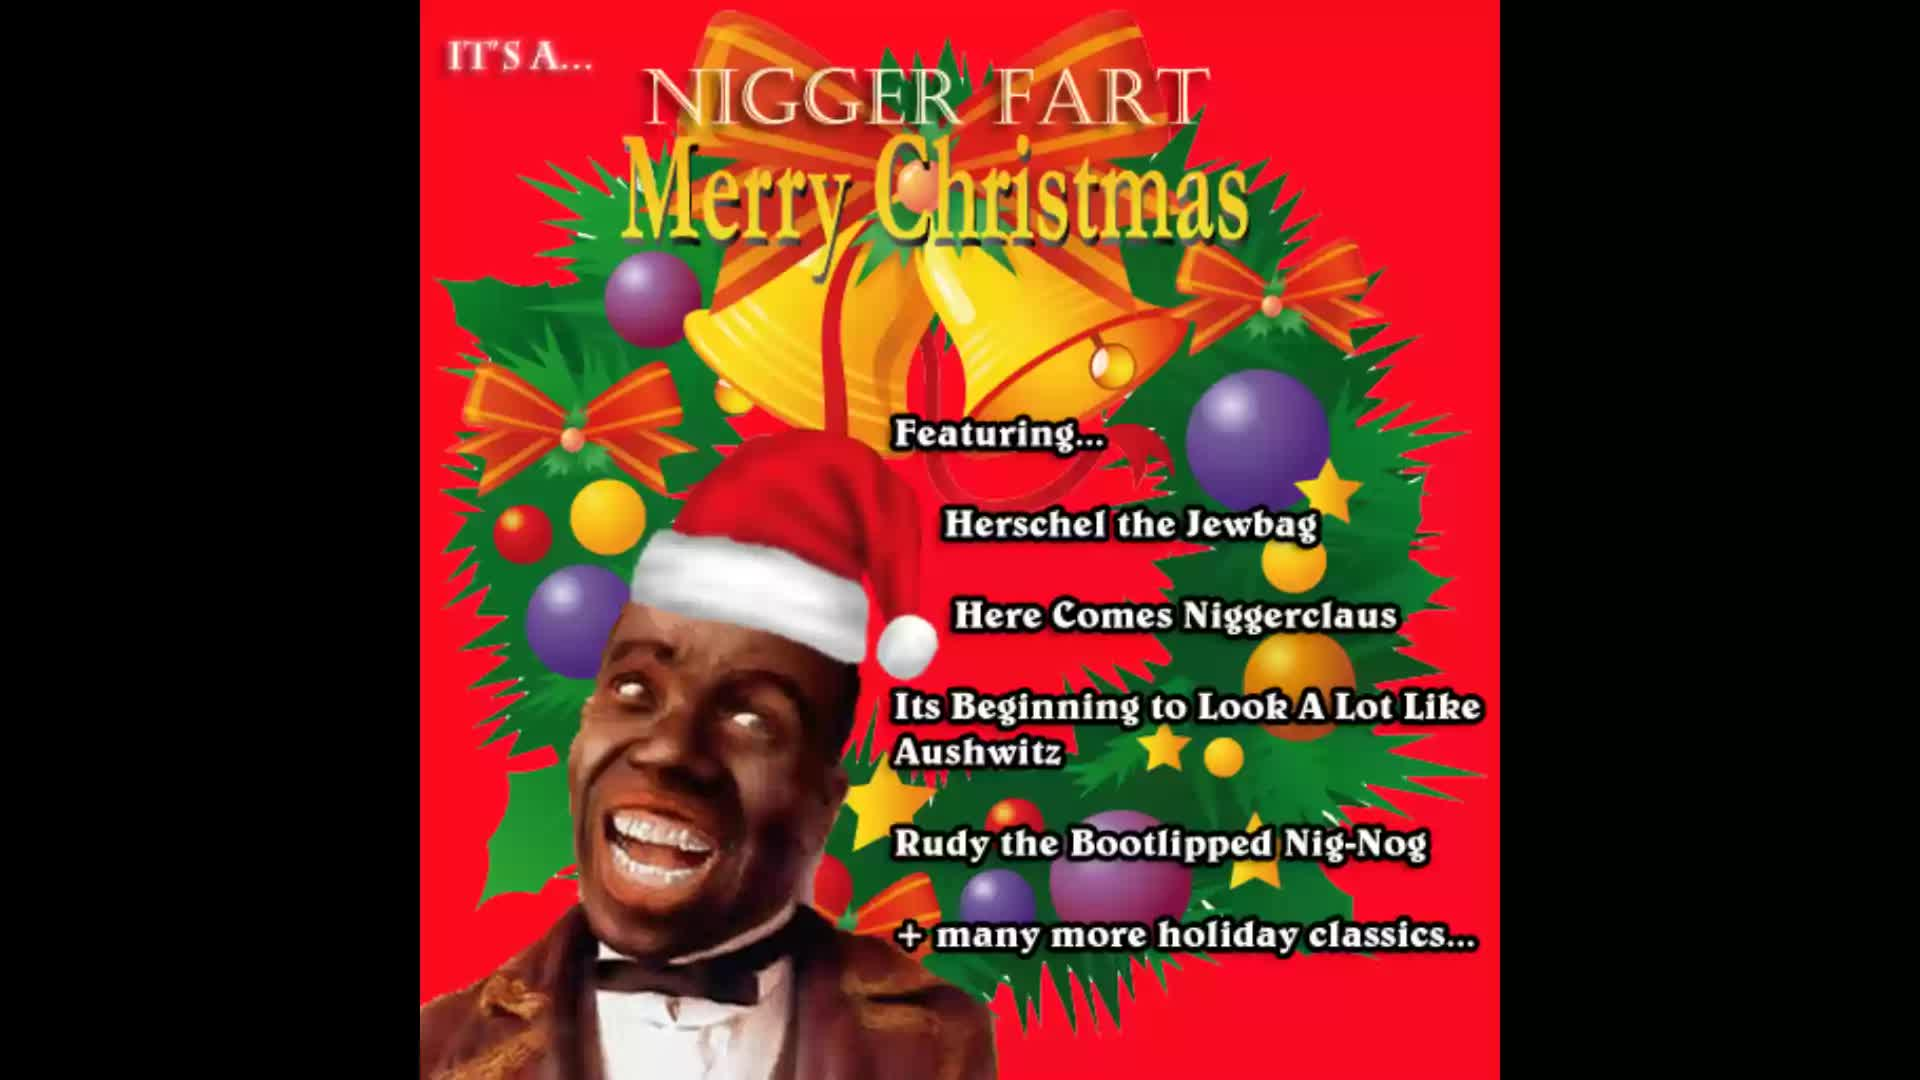 IT'S BEGINNING TO LOOK A LOT LIKE AUSCHWITZ (XMAS SONG)